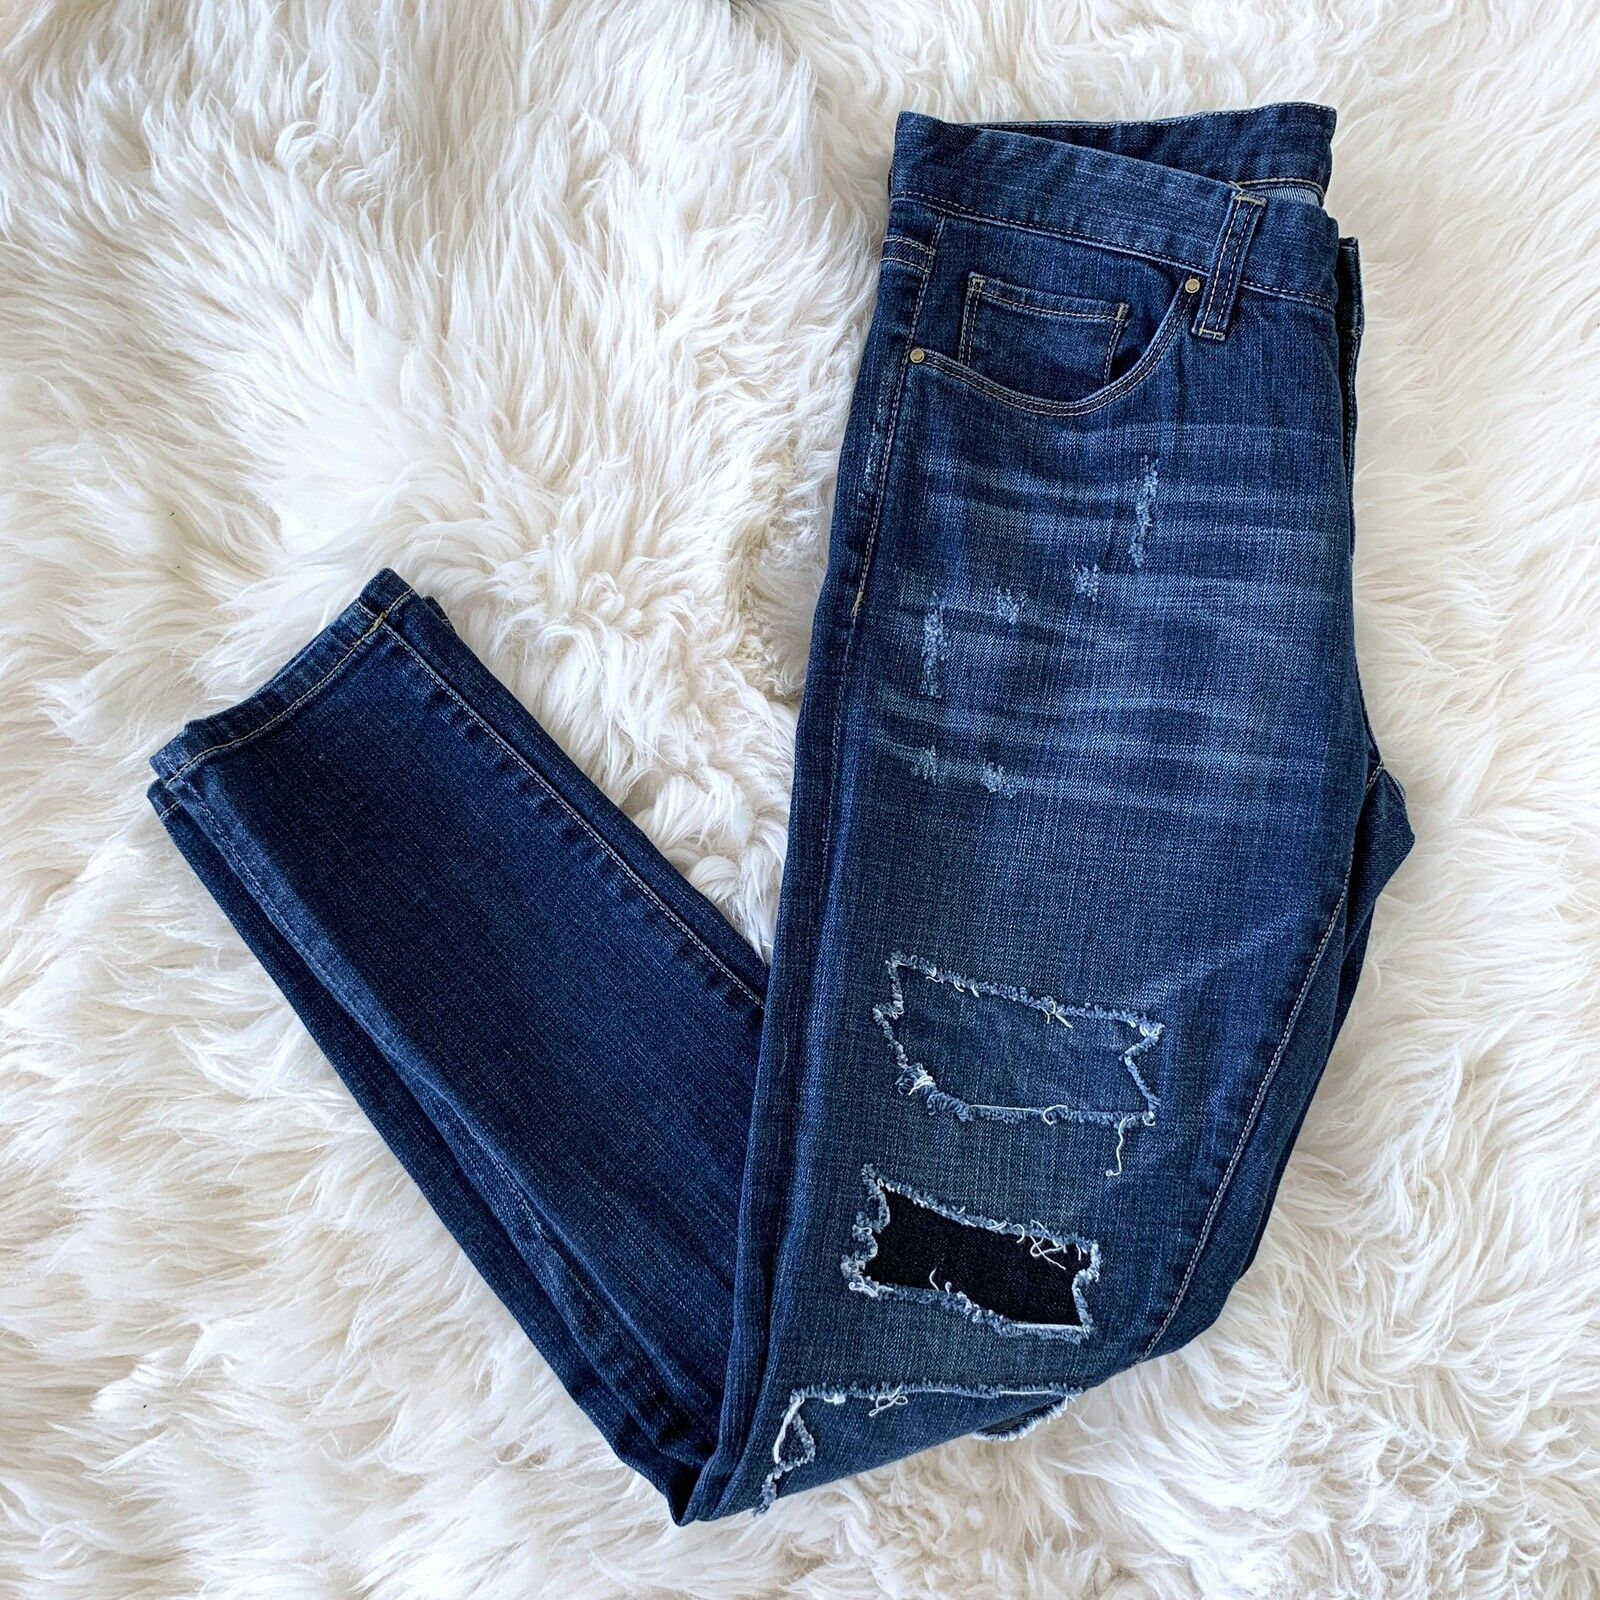 Blank NYC Skinny Jeans Womens Size 26 Dark bluee Patchwork Distressed Destroyed